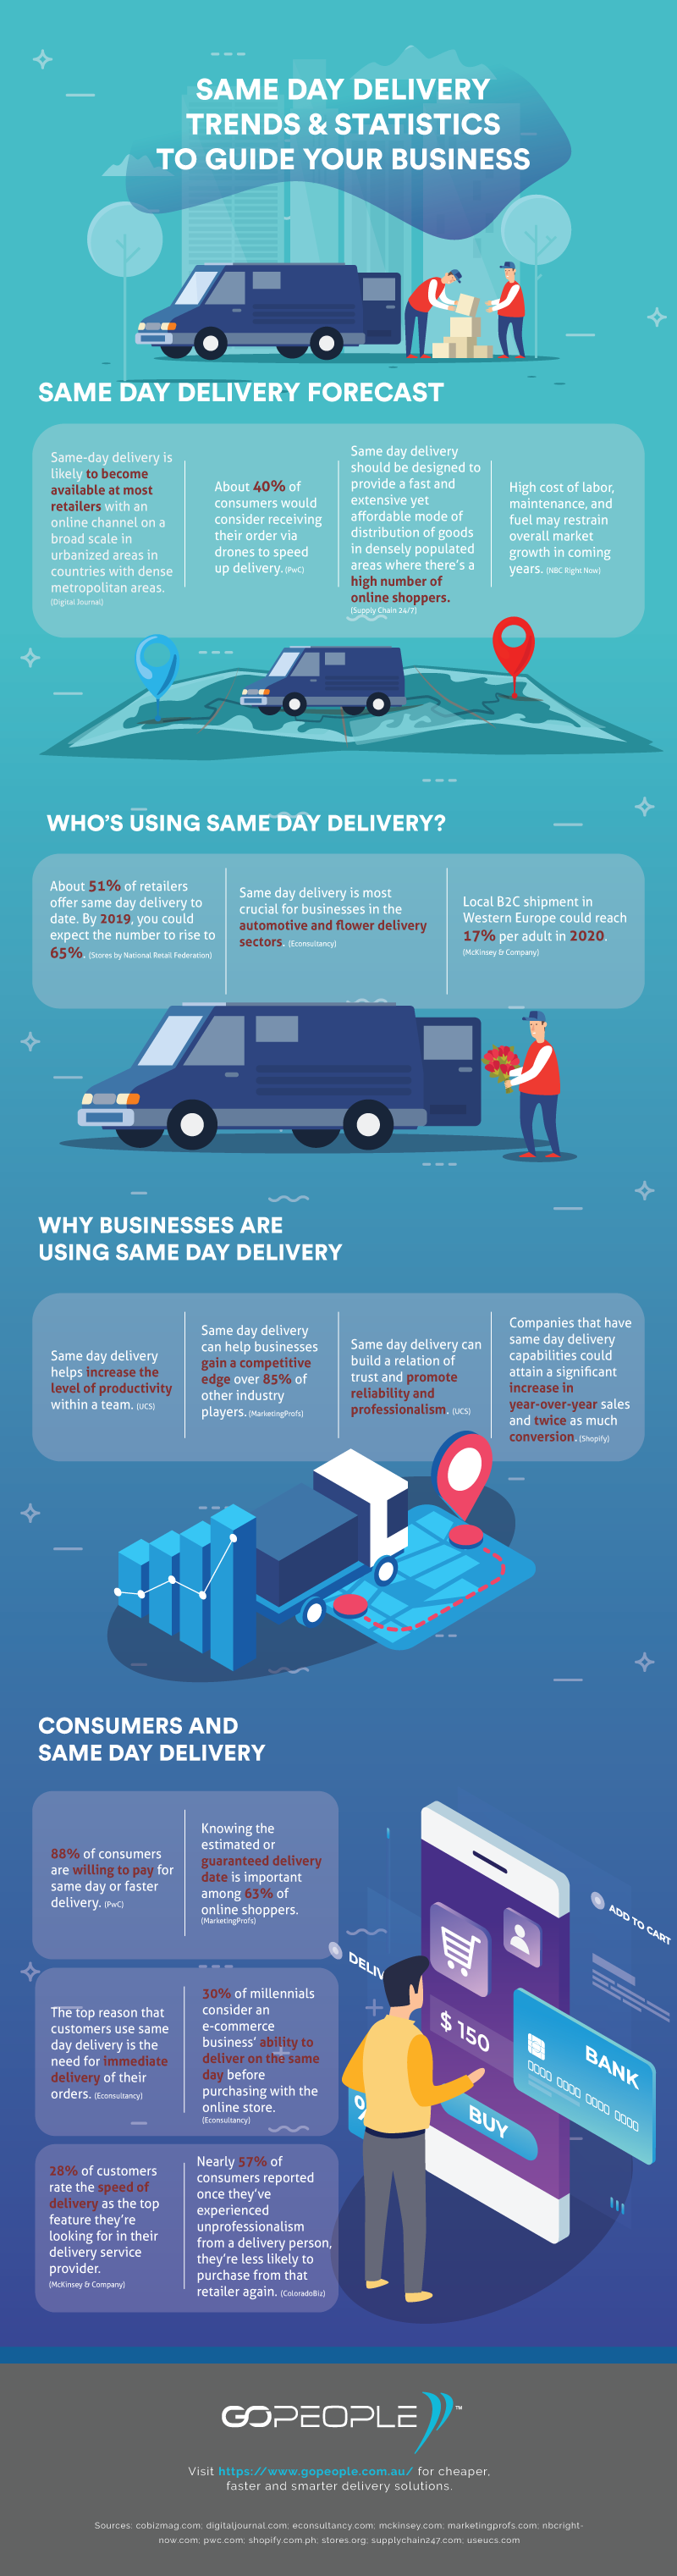 Same Day Delivery Trends and Statistics to Guide Your Business Infographic